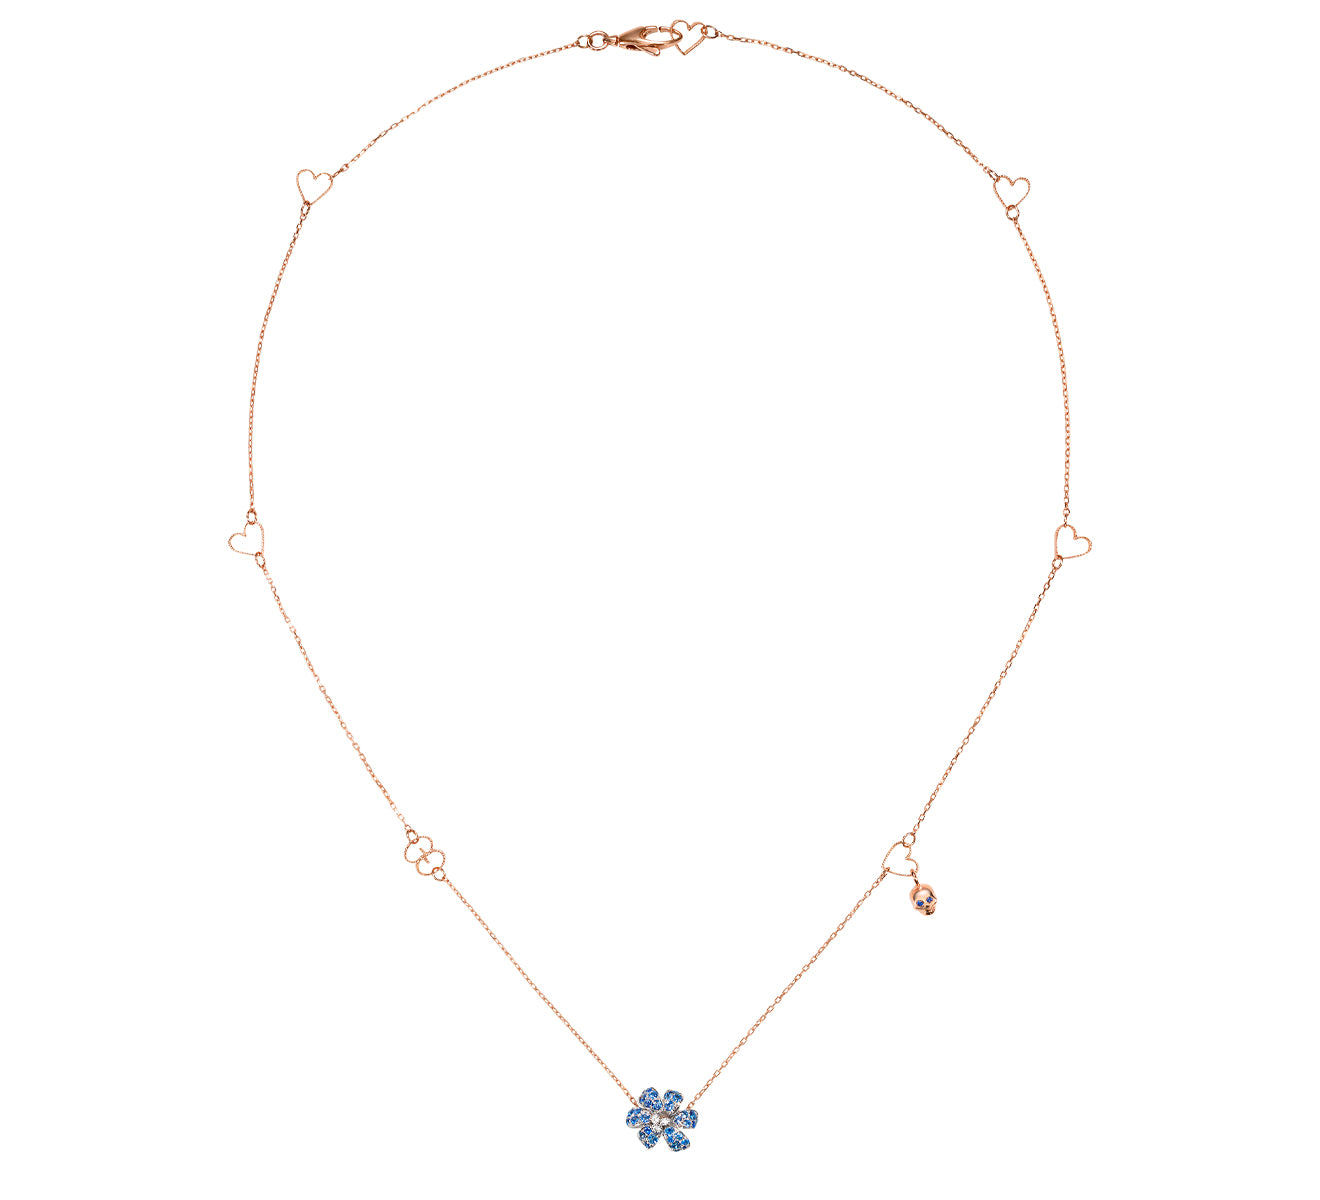 Gucci Flora Necklace in 18k Rose and White Gold with Blue Sapphires - Orsini Jewellers NZ